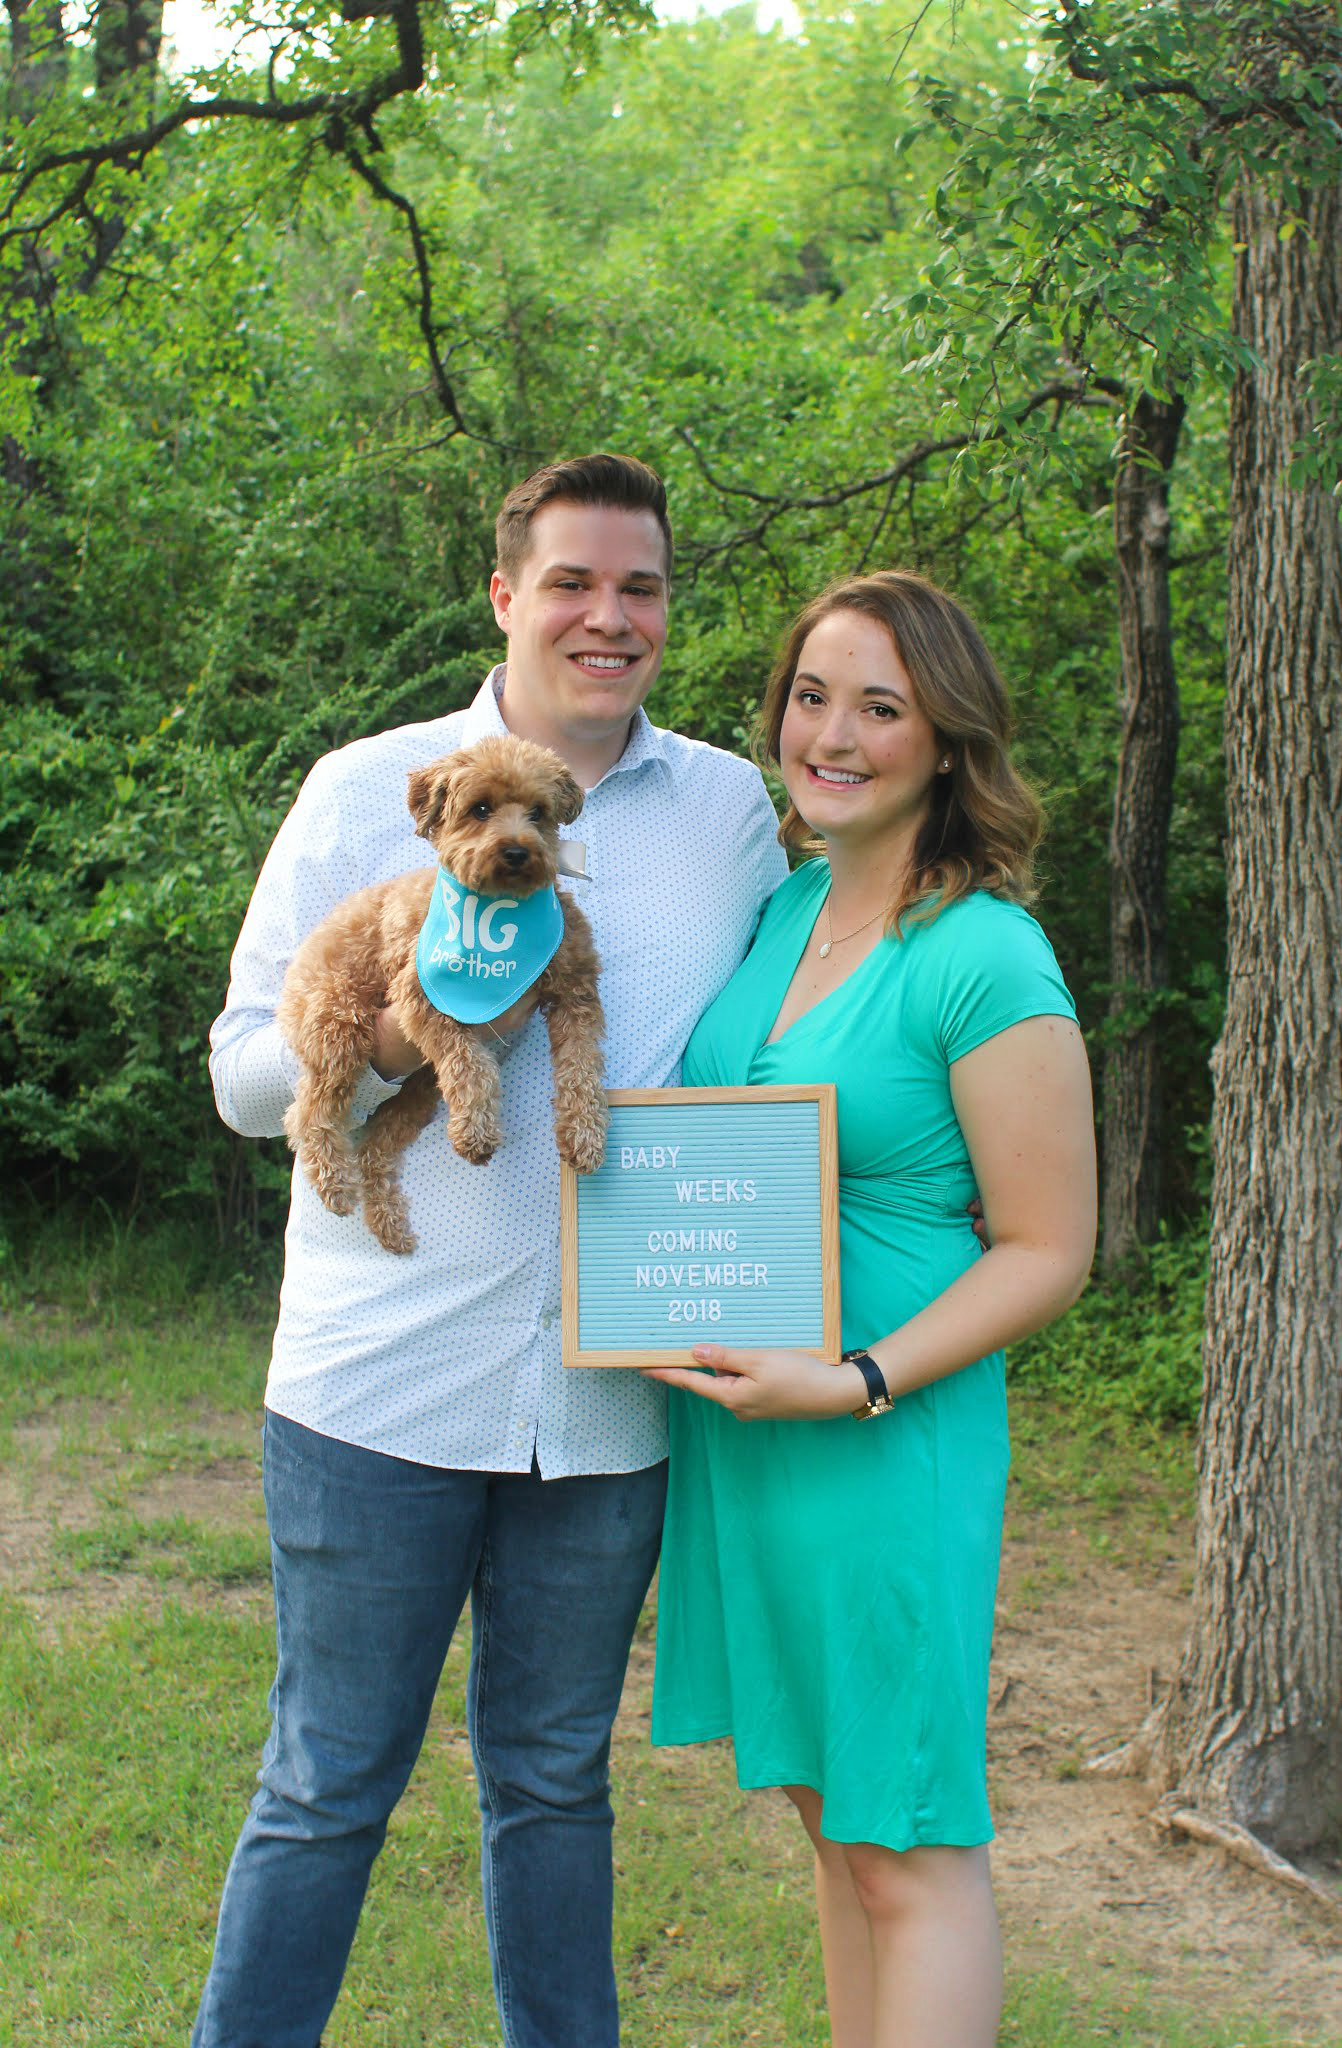 We're Expecting! The First Trimester - Zen & Spice